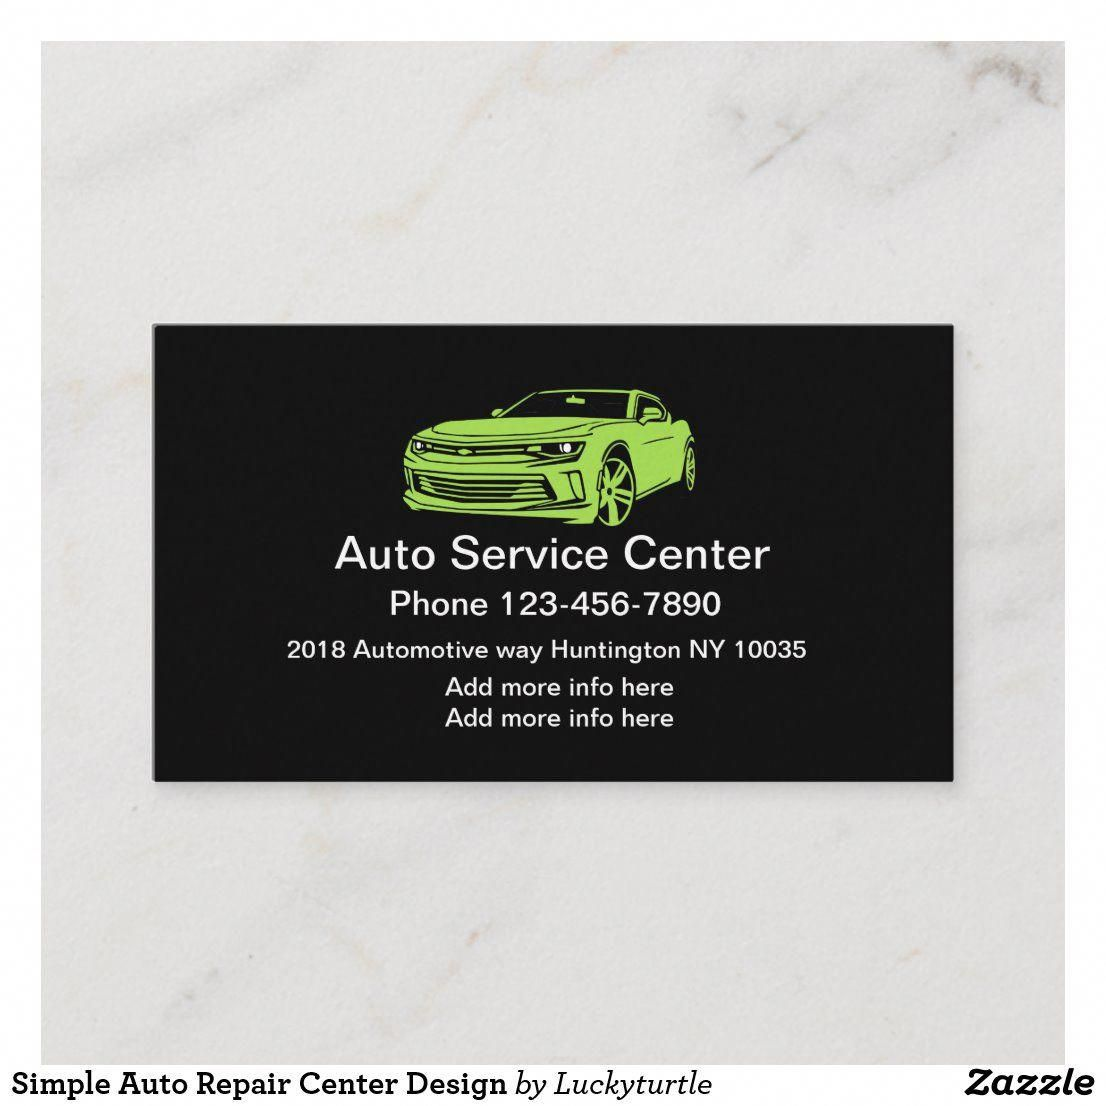 Starting Now Don T Forget This Kind Of Object For Car Classic Dreams Seems 100 Superb Have To Remember This Next In 2020 Auto Repair Repair Car Repair Service